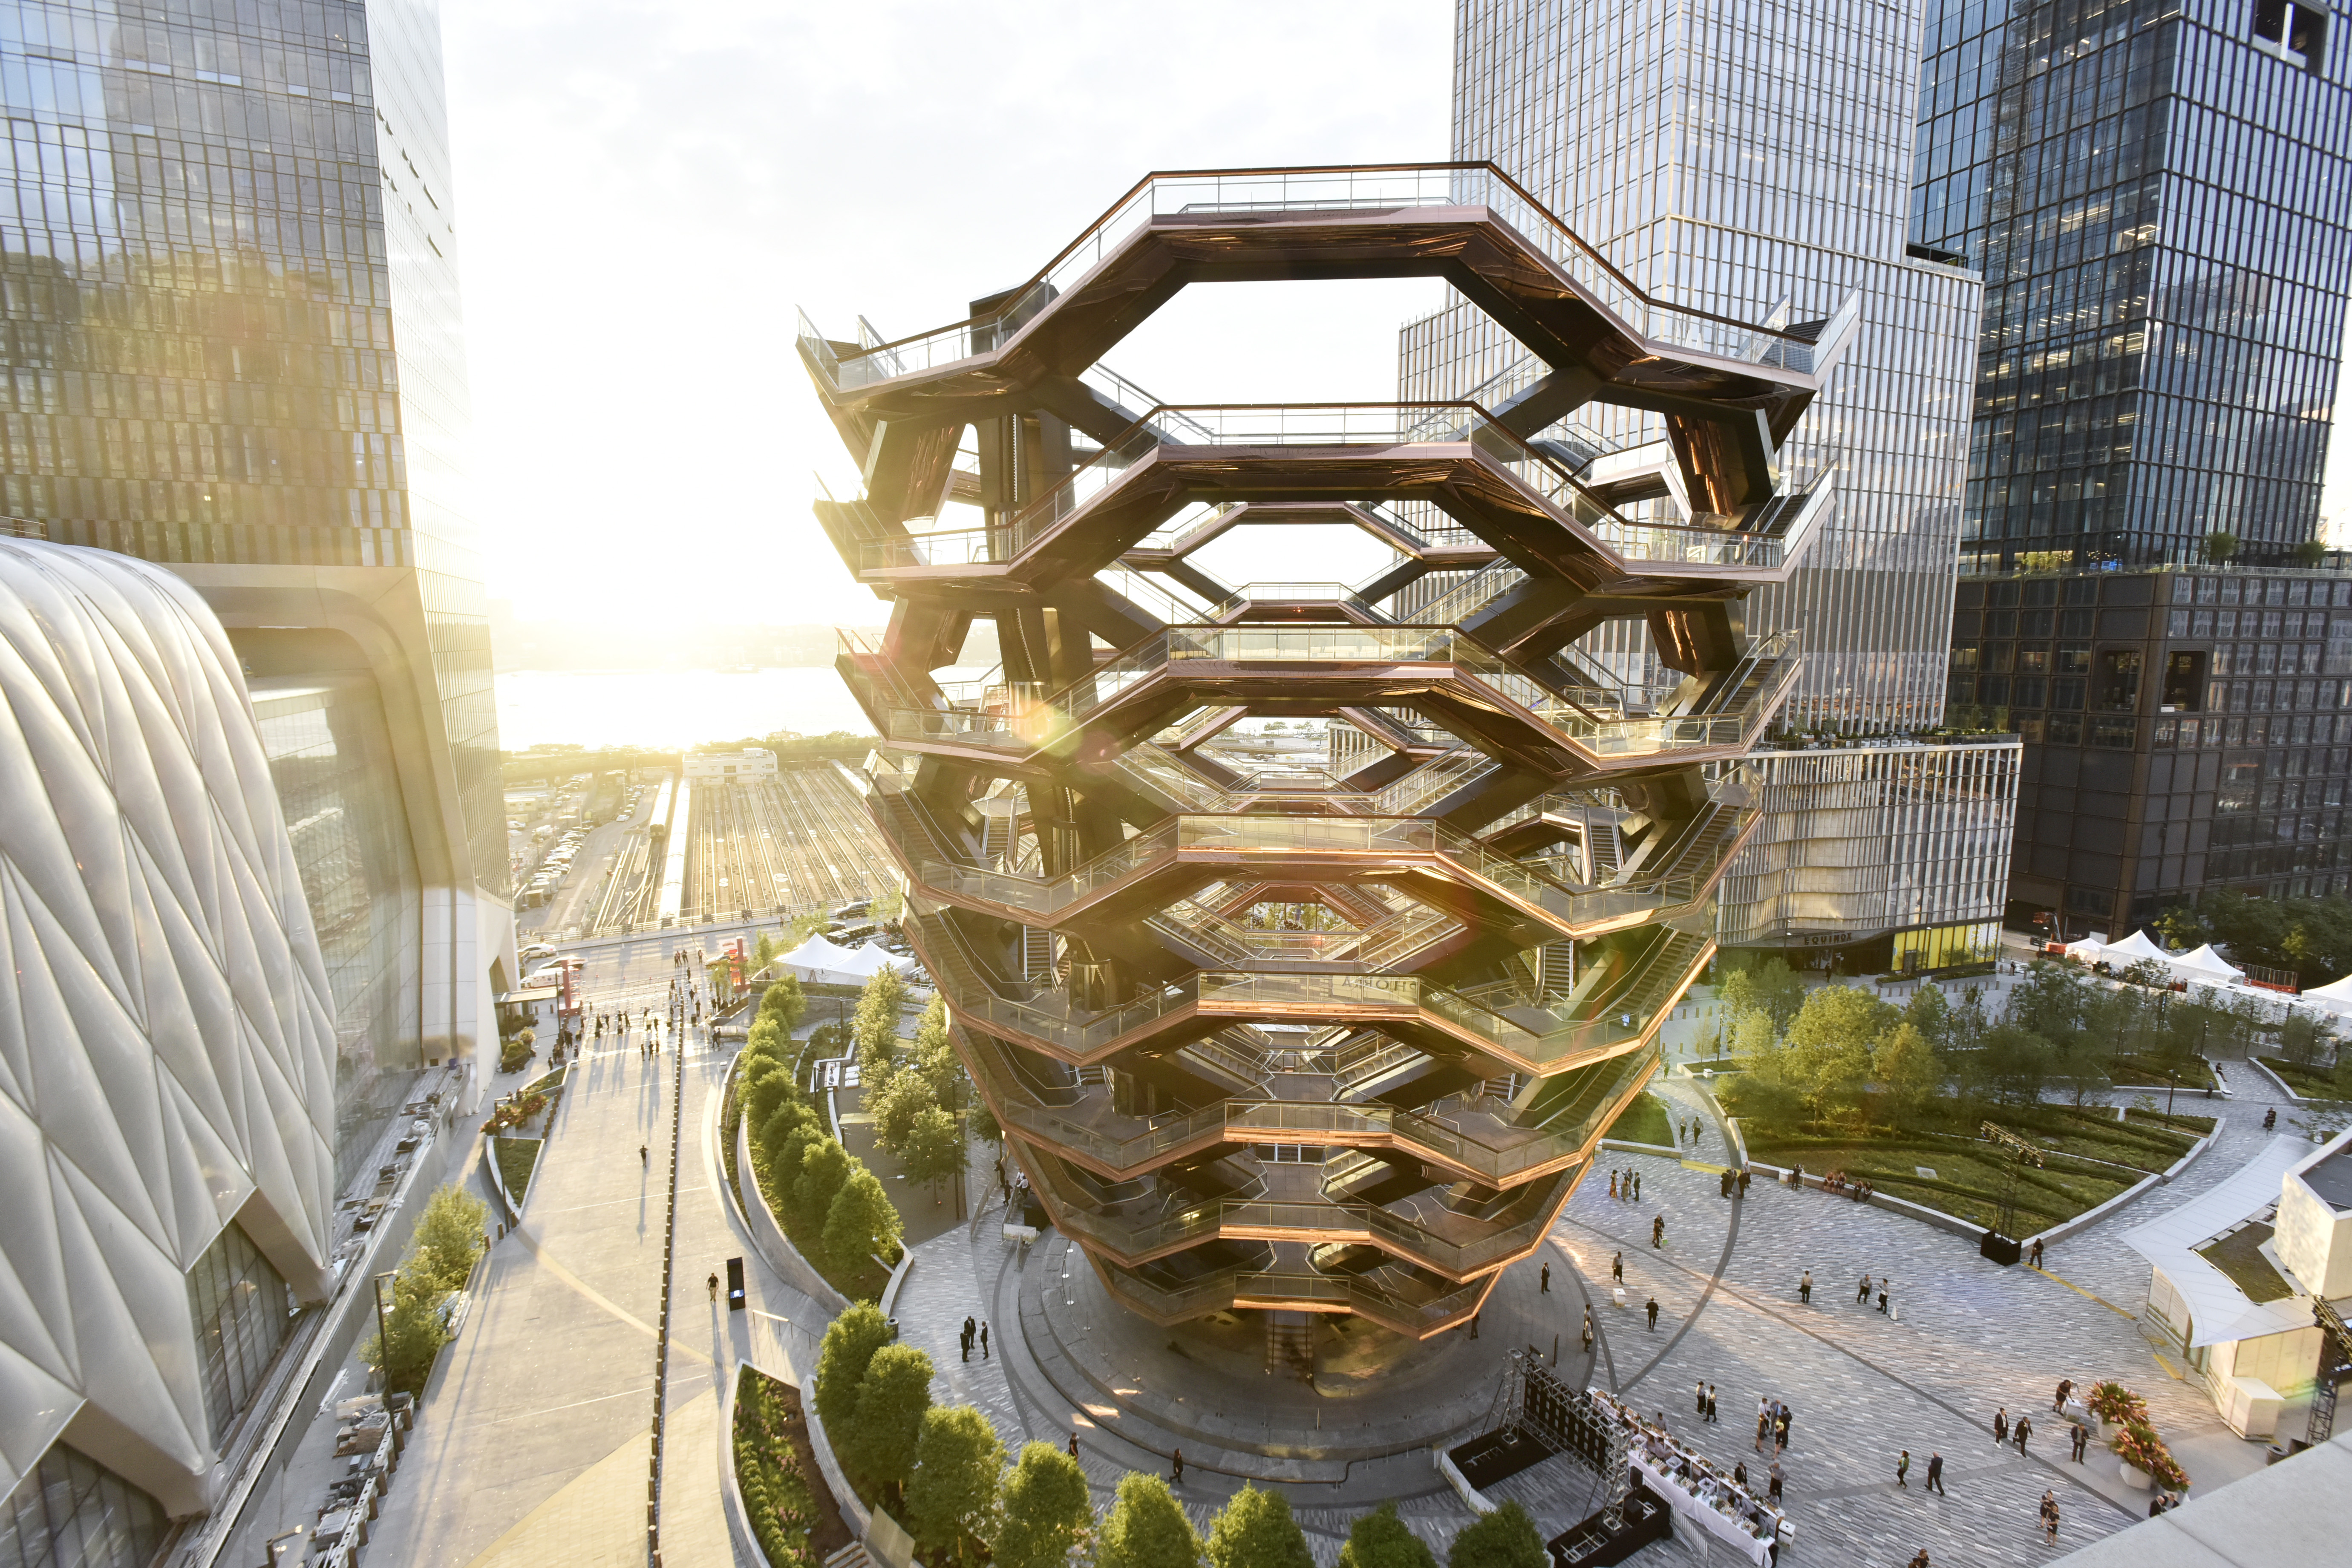 The Vessel and Shed, two key components of the new Hudson Yards development in New York City.